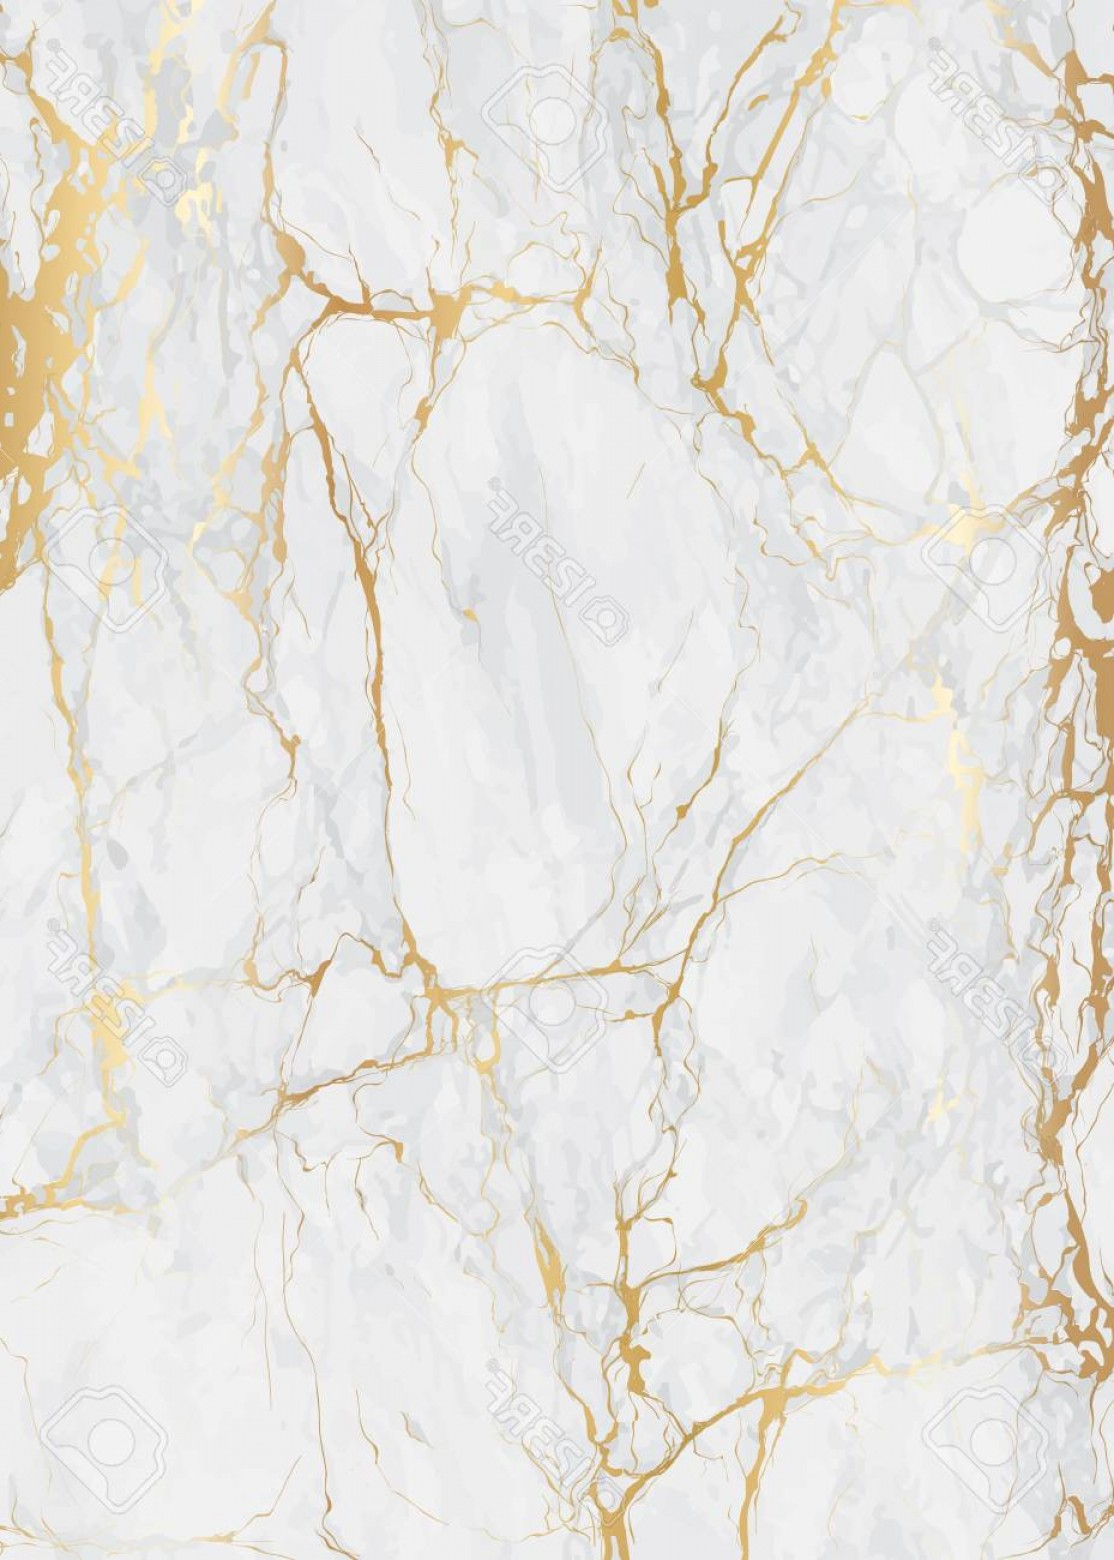 Marble With Gold Background Vector: Photostock Vector Marble With Golden Texture Background For Wedding Card And Luxury Cover Vector Illustration